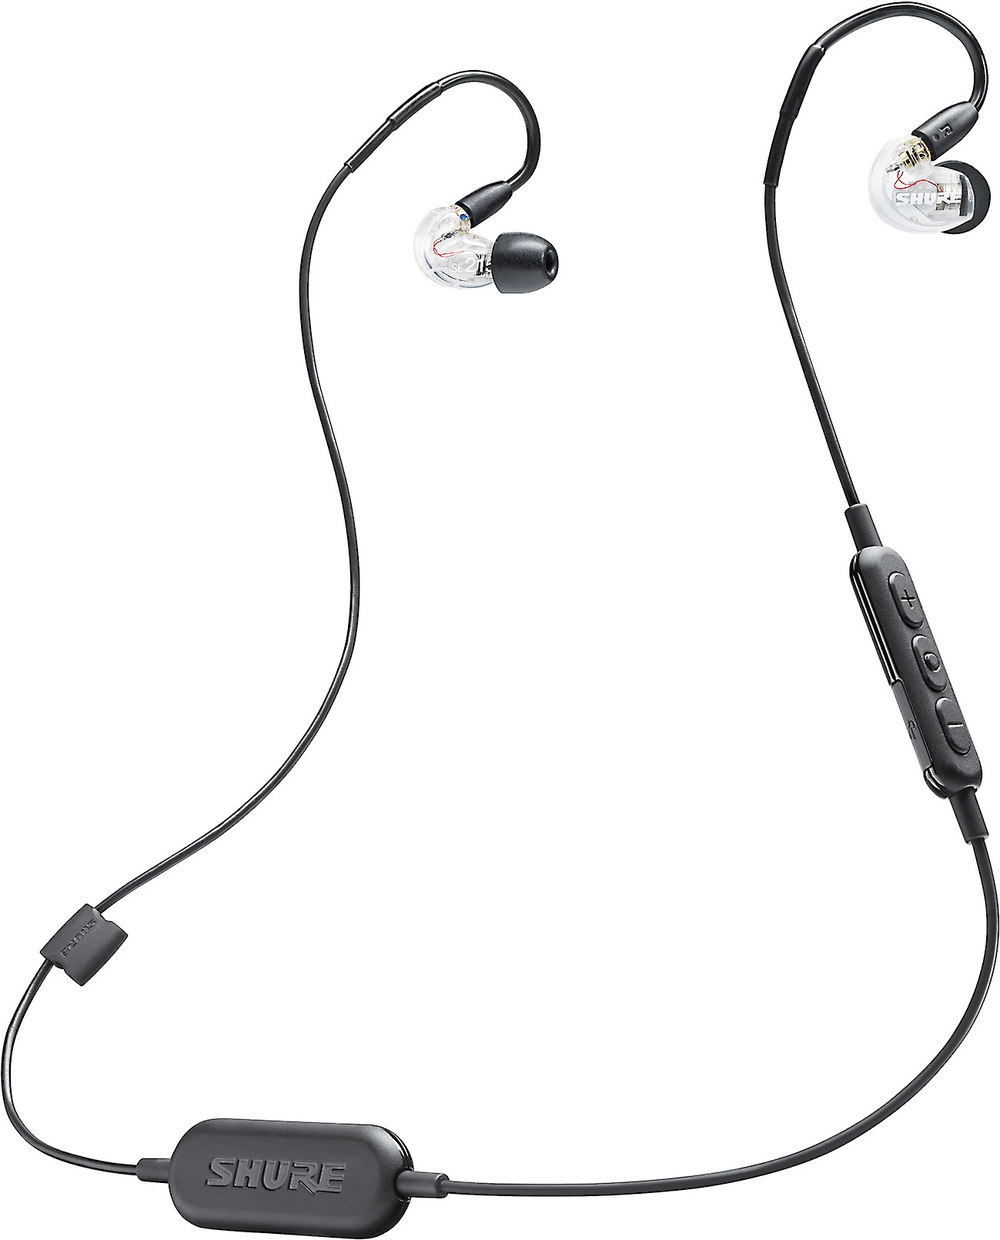 """Shure se215 bt1 clear sound isolatingâ""""¢ earphones with wireless x183215cbt1 f shure se215 bt1 clearhtml shure mic wiring diagram life"""